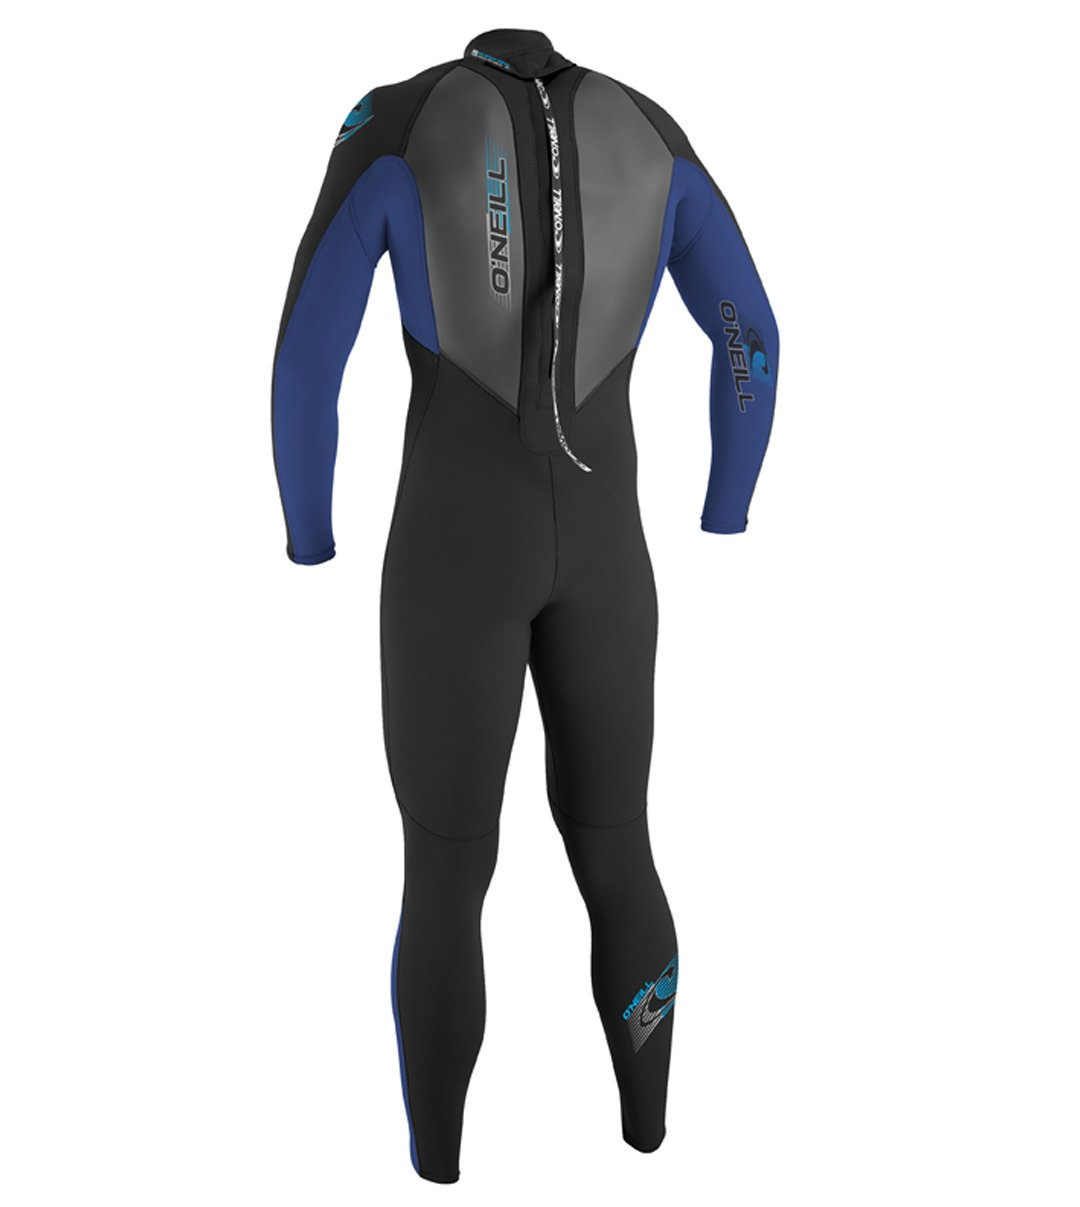 O'Neill Youth Reactor 3/2mm Back Zip Full Wetsuit, Black/Pacific/Black, 12 by O'Neill Wetsuits (Image #2)